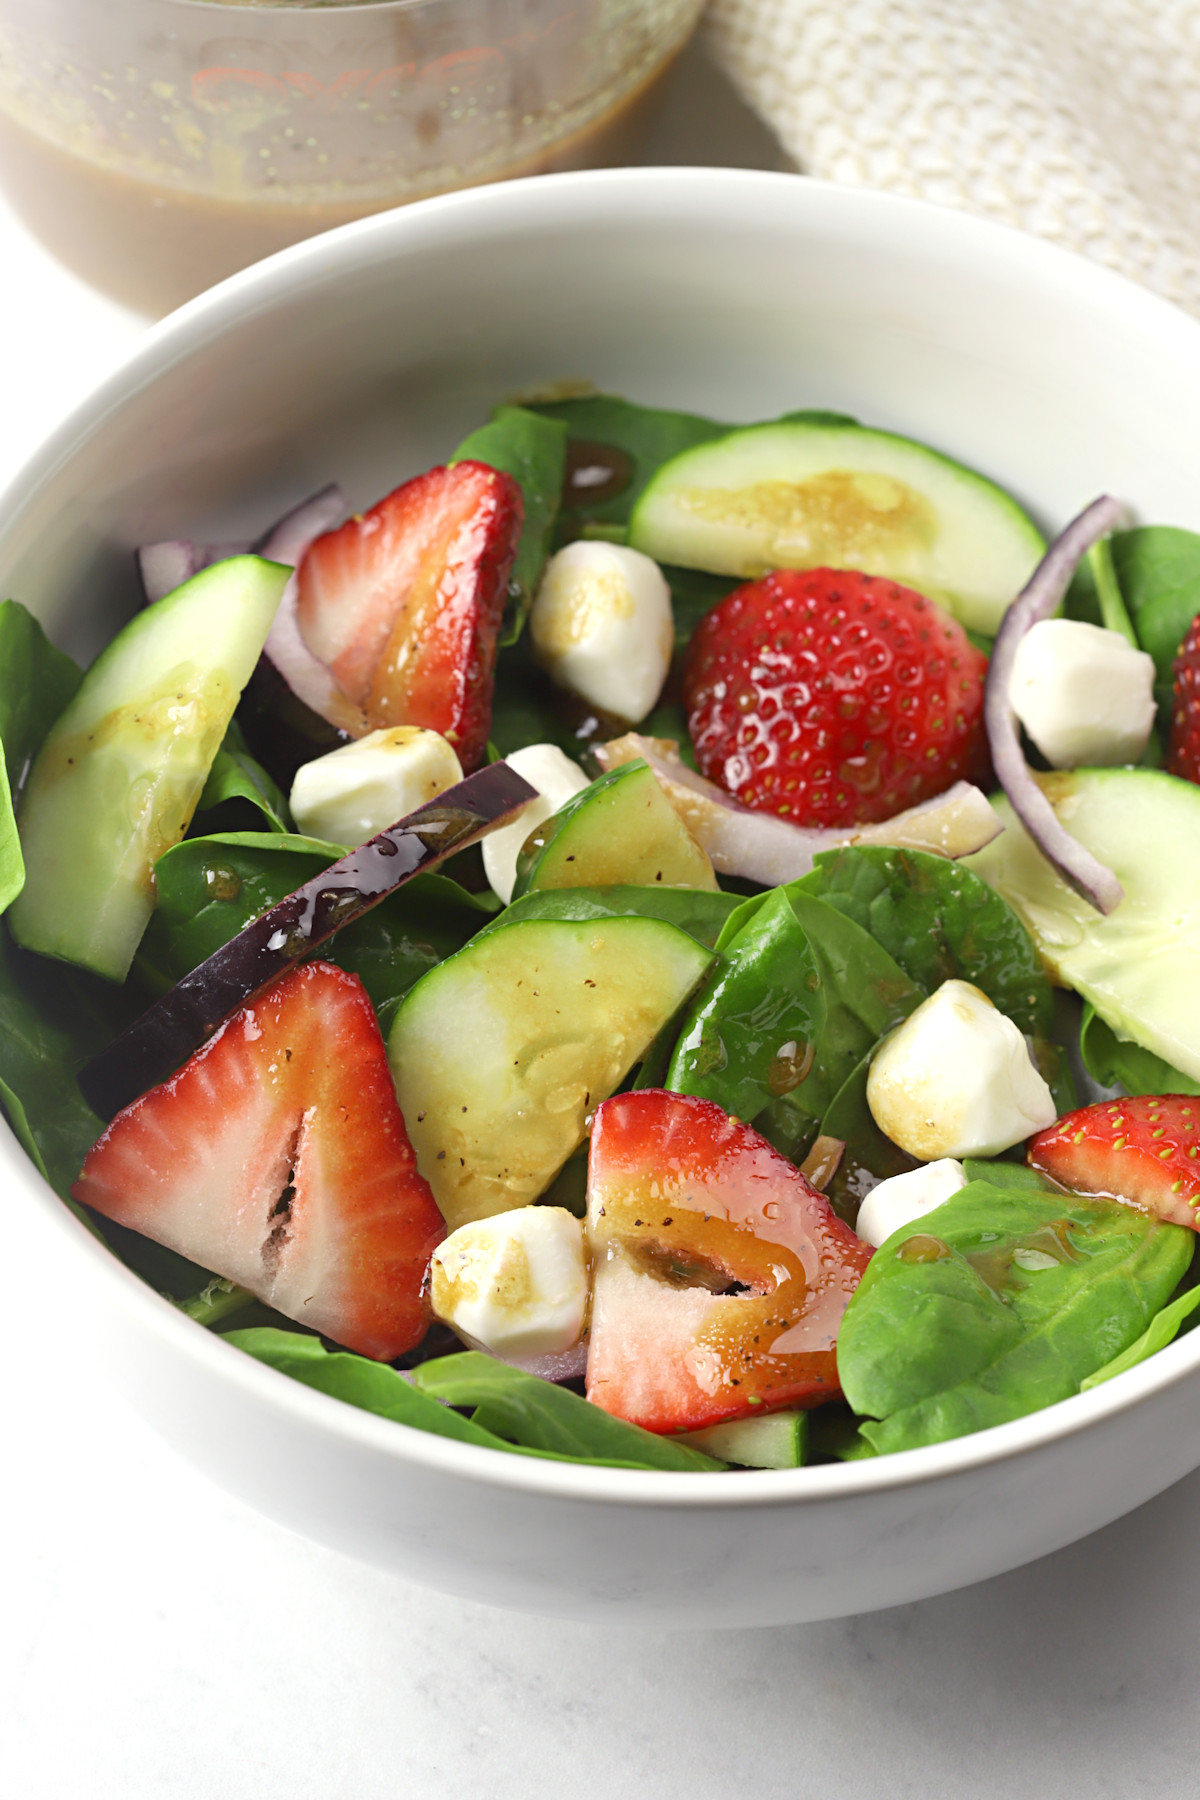 White bowl filled with spinach, strawberries, and cucumbers.